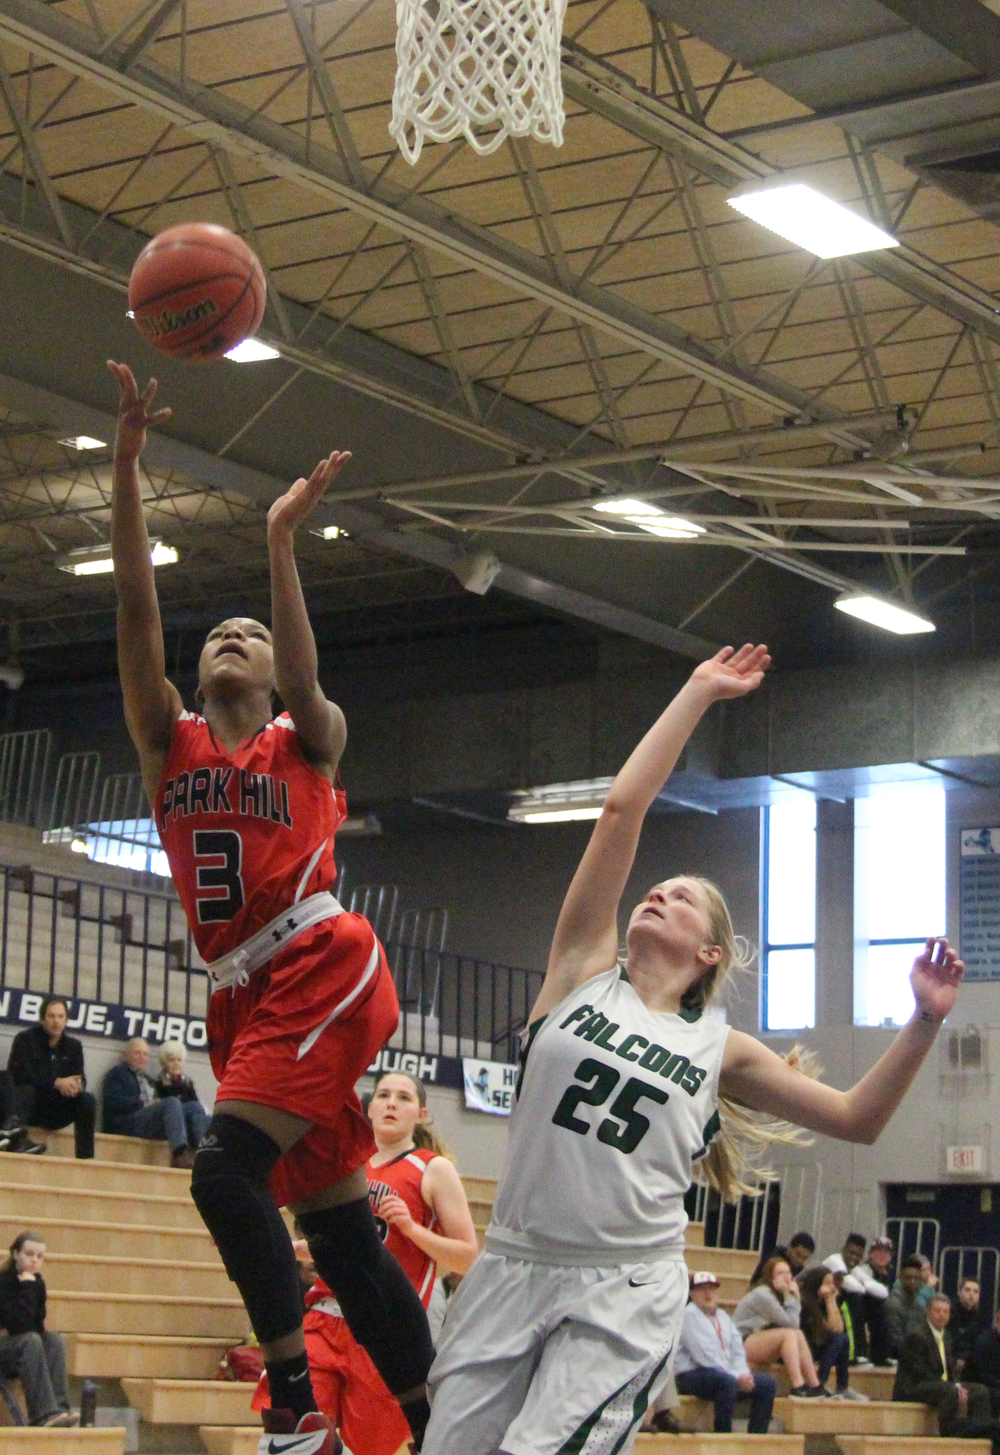 ROSS MARTIN/Citizen photo Park Hill junior guard Gigi Hopkins, left, goes in for a layup against Staley's Victoria DeFerraris during a Class 5 District 16 semifinal Thursday, March 3 at Oak Park High School in Kansas City, Mo.